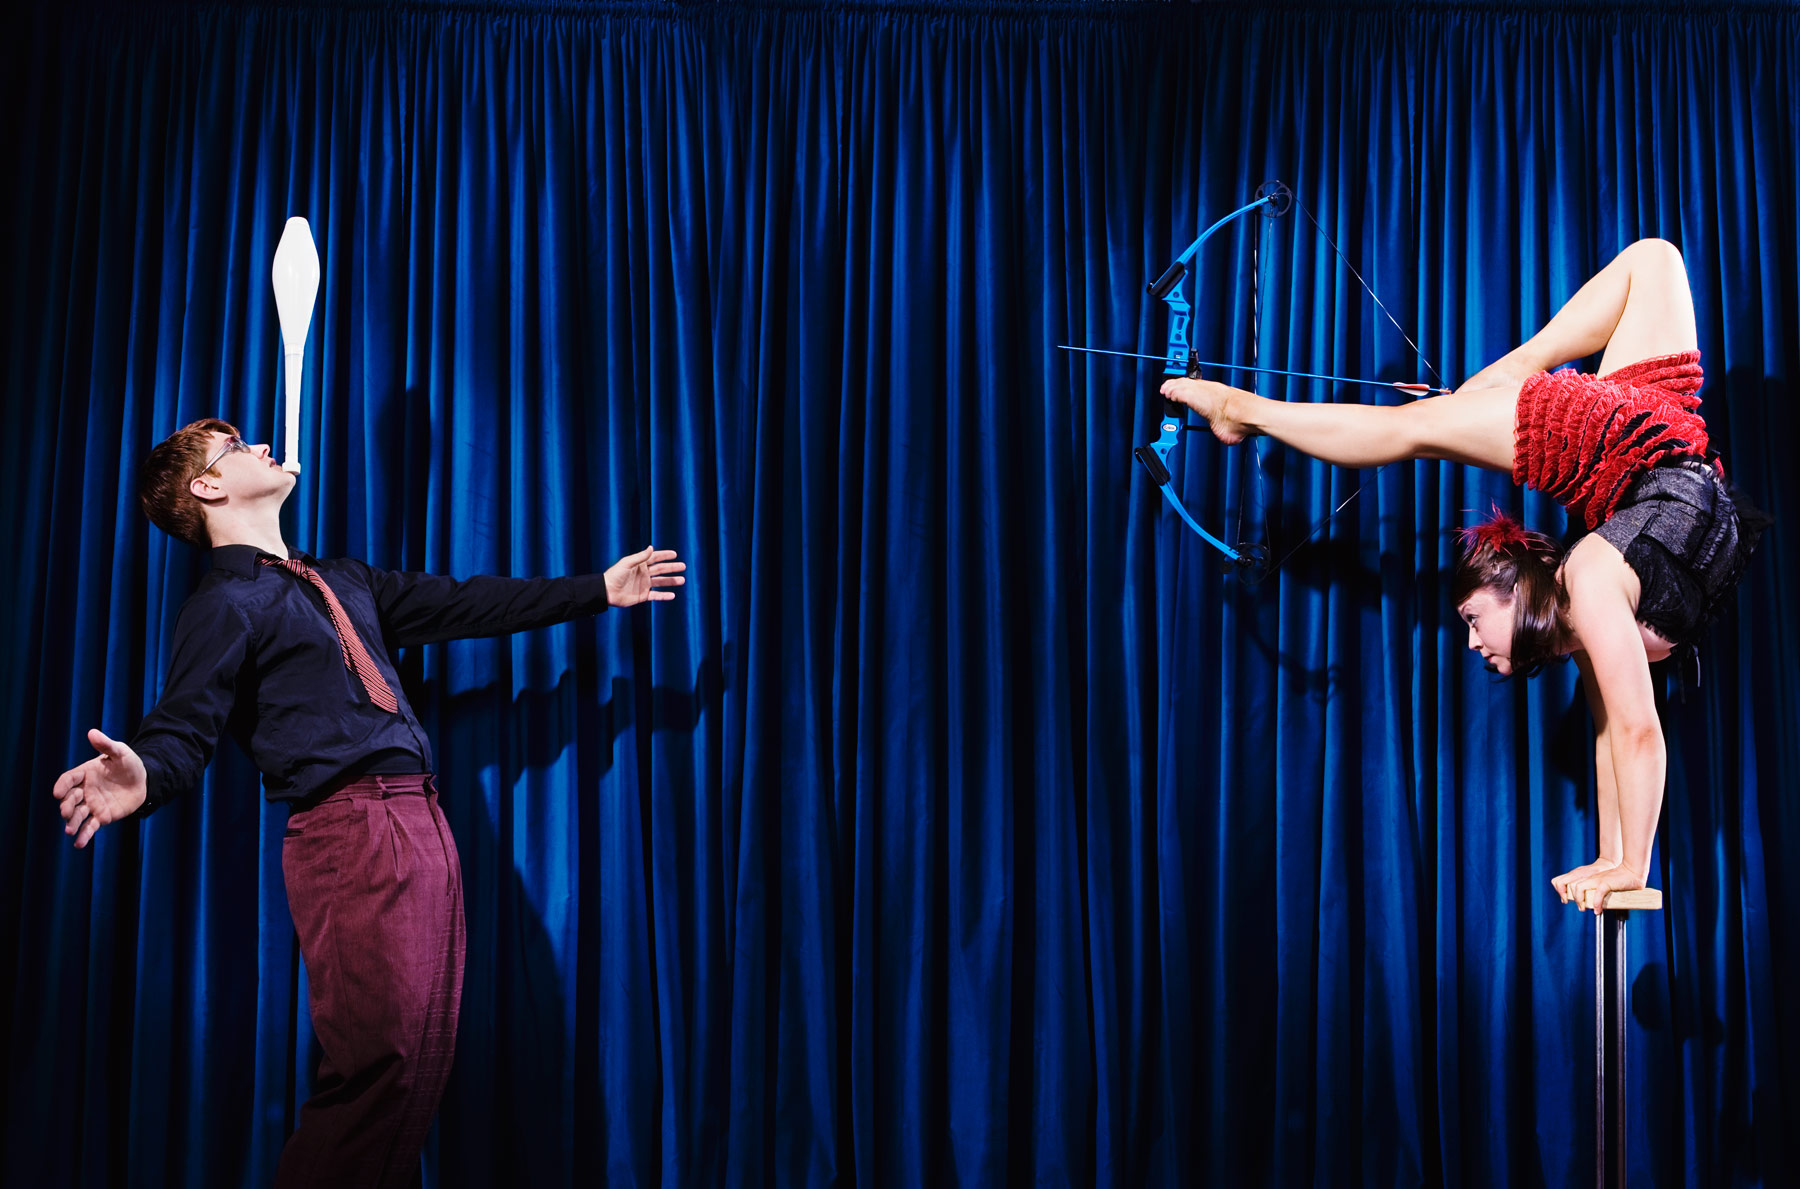 Portland commercial photographer - performers doing a trick with the man balancing a pinball on his chin and the woman holding a bow and arrow with her feet while balancing on her hands